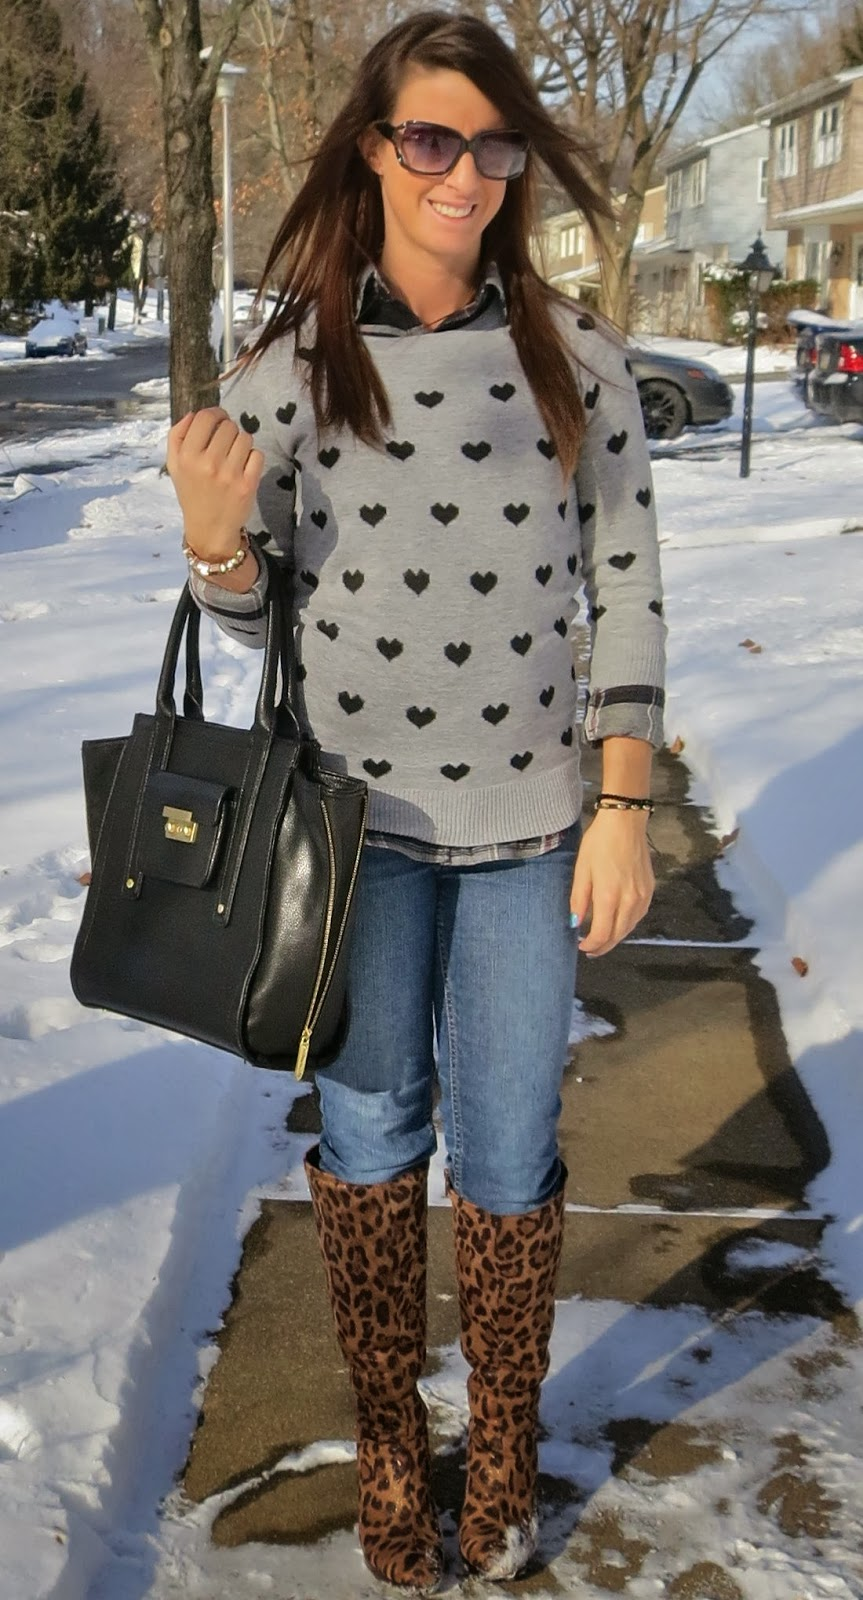 Boots, Fashion, flannel, hearts, kate spade, layering, layers, leopard boots, leopard print, ootd, Outfit Ideas, outfit of the day, Outfits, phillip lim for target, sweaters, what i wore, winter fashion,